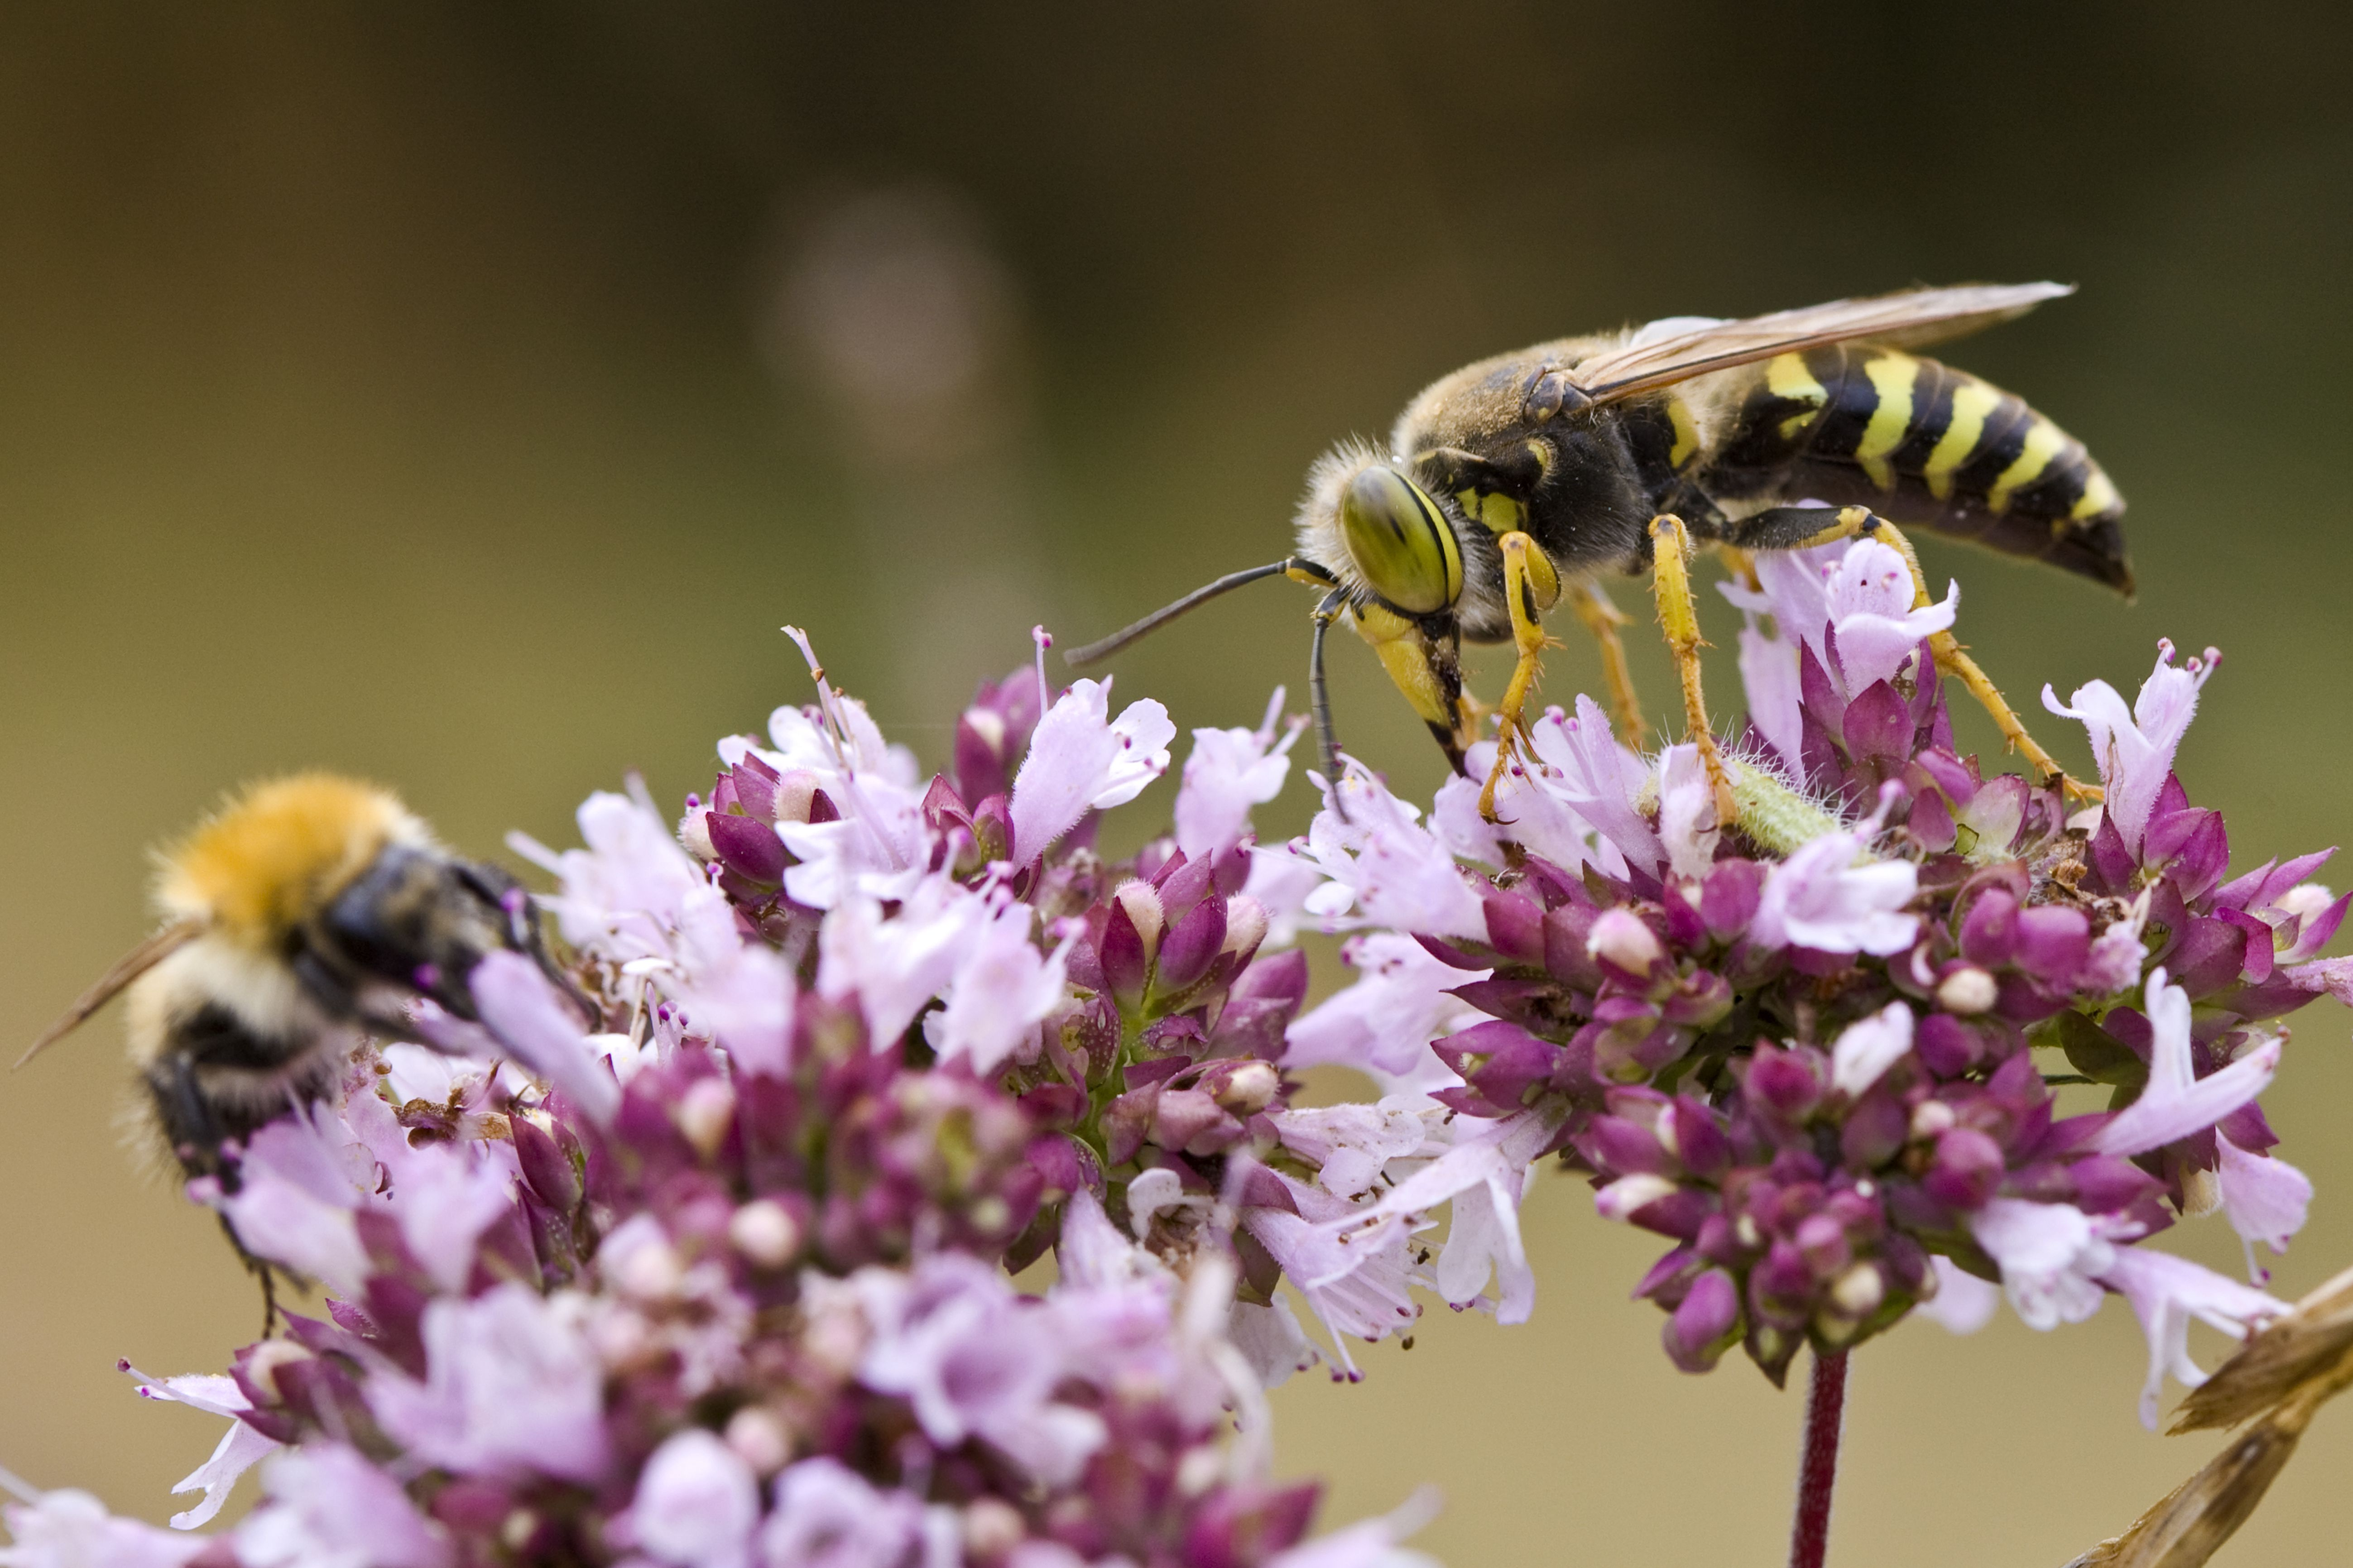 Wasp and Bee Gather Pollen, Γαλλία